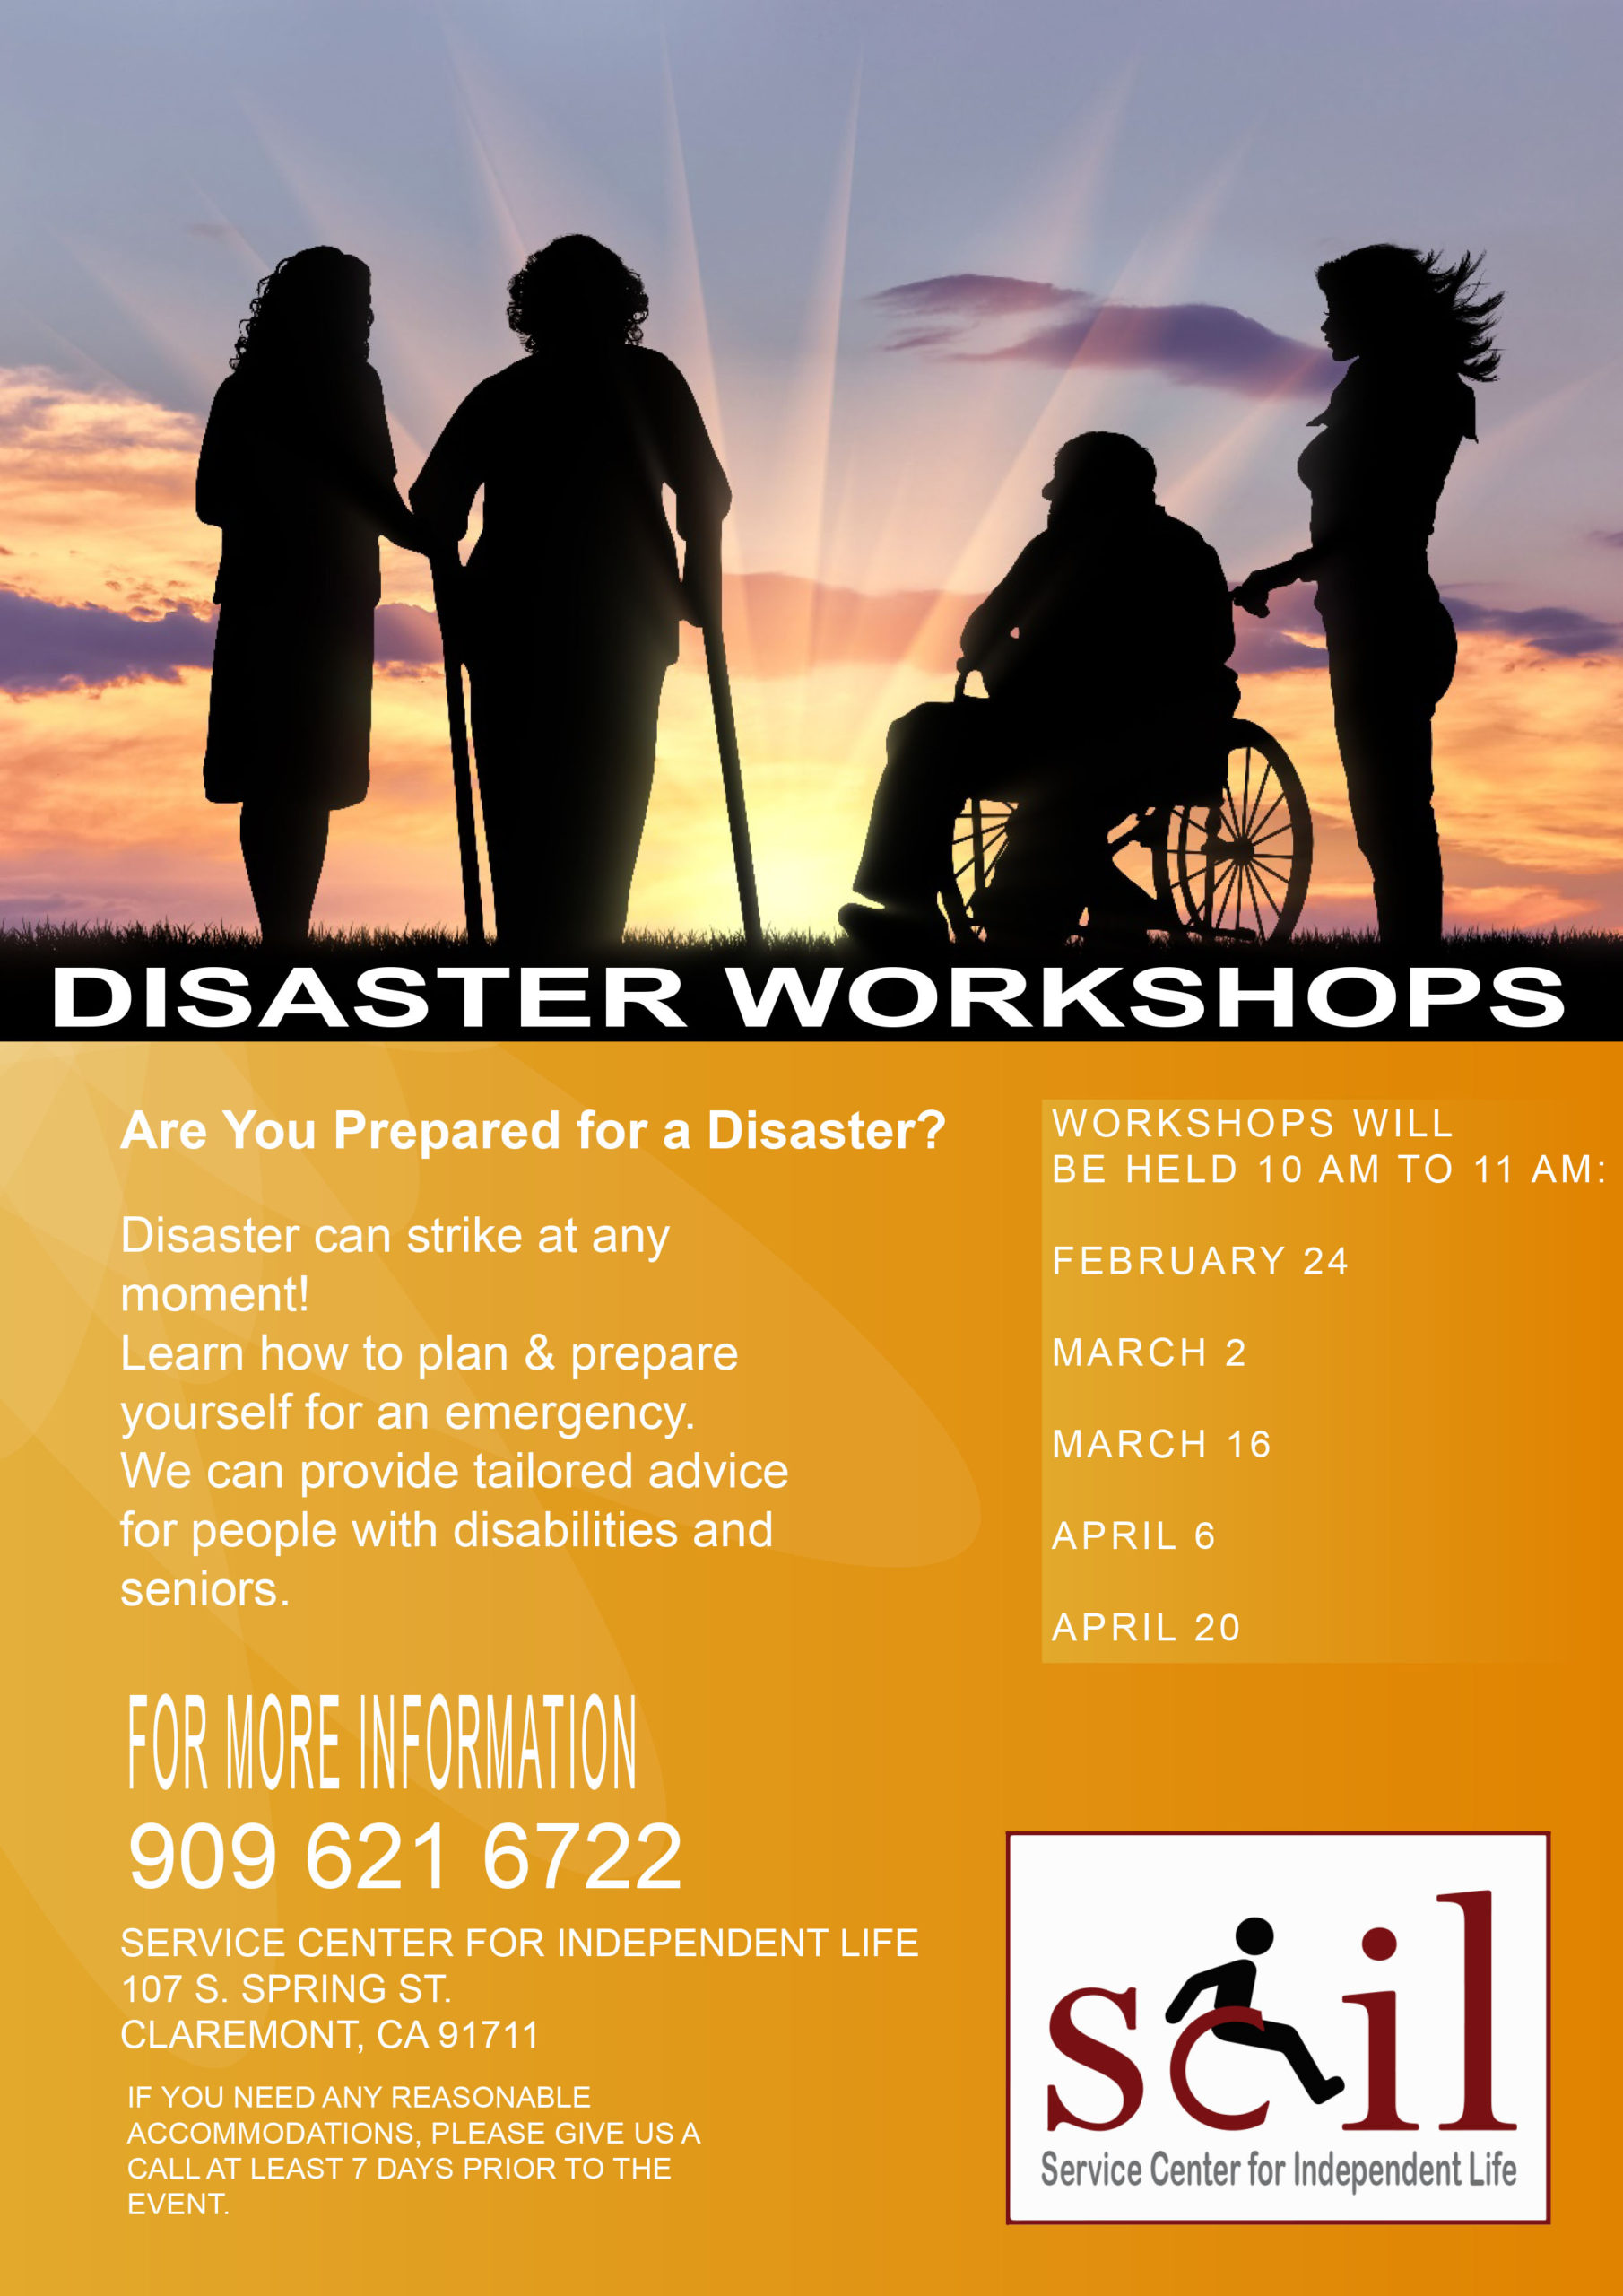 Disaster Workshops